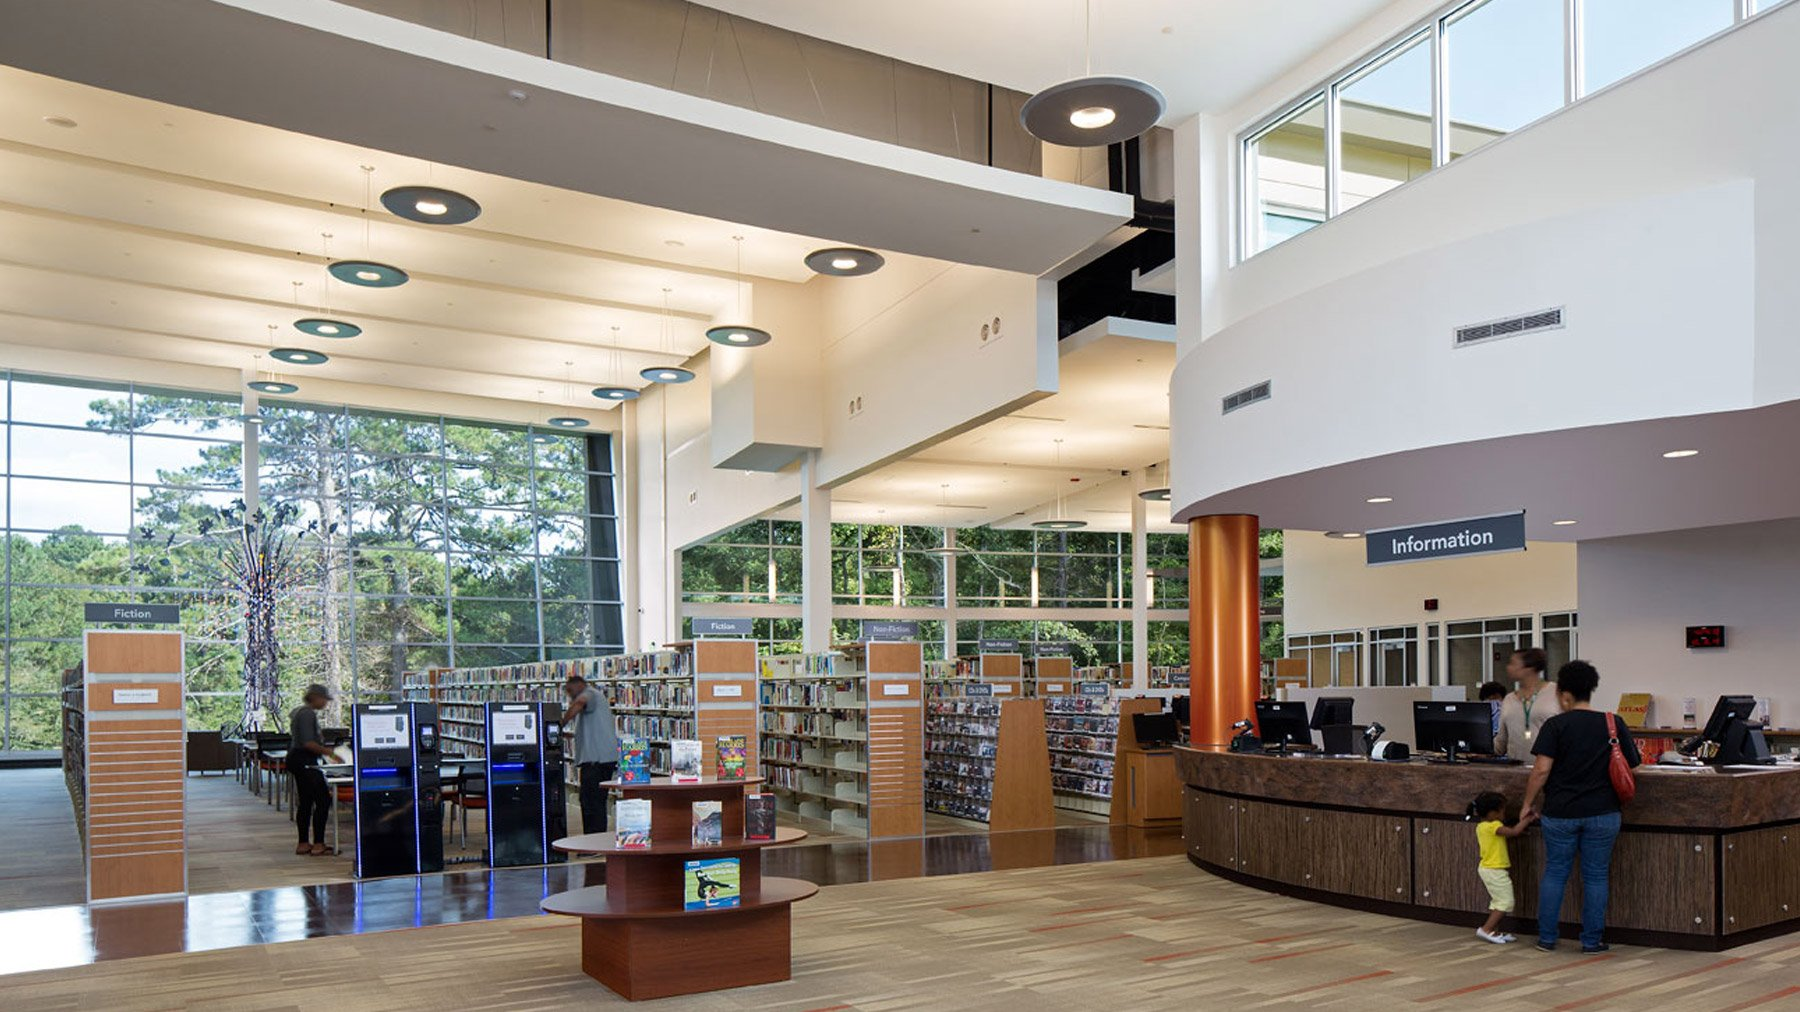 02 Wolf Creek Library